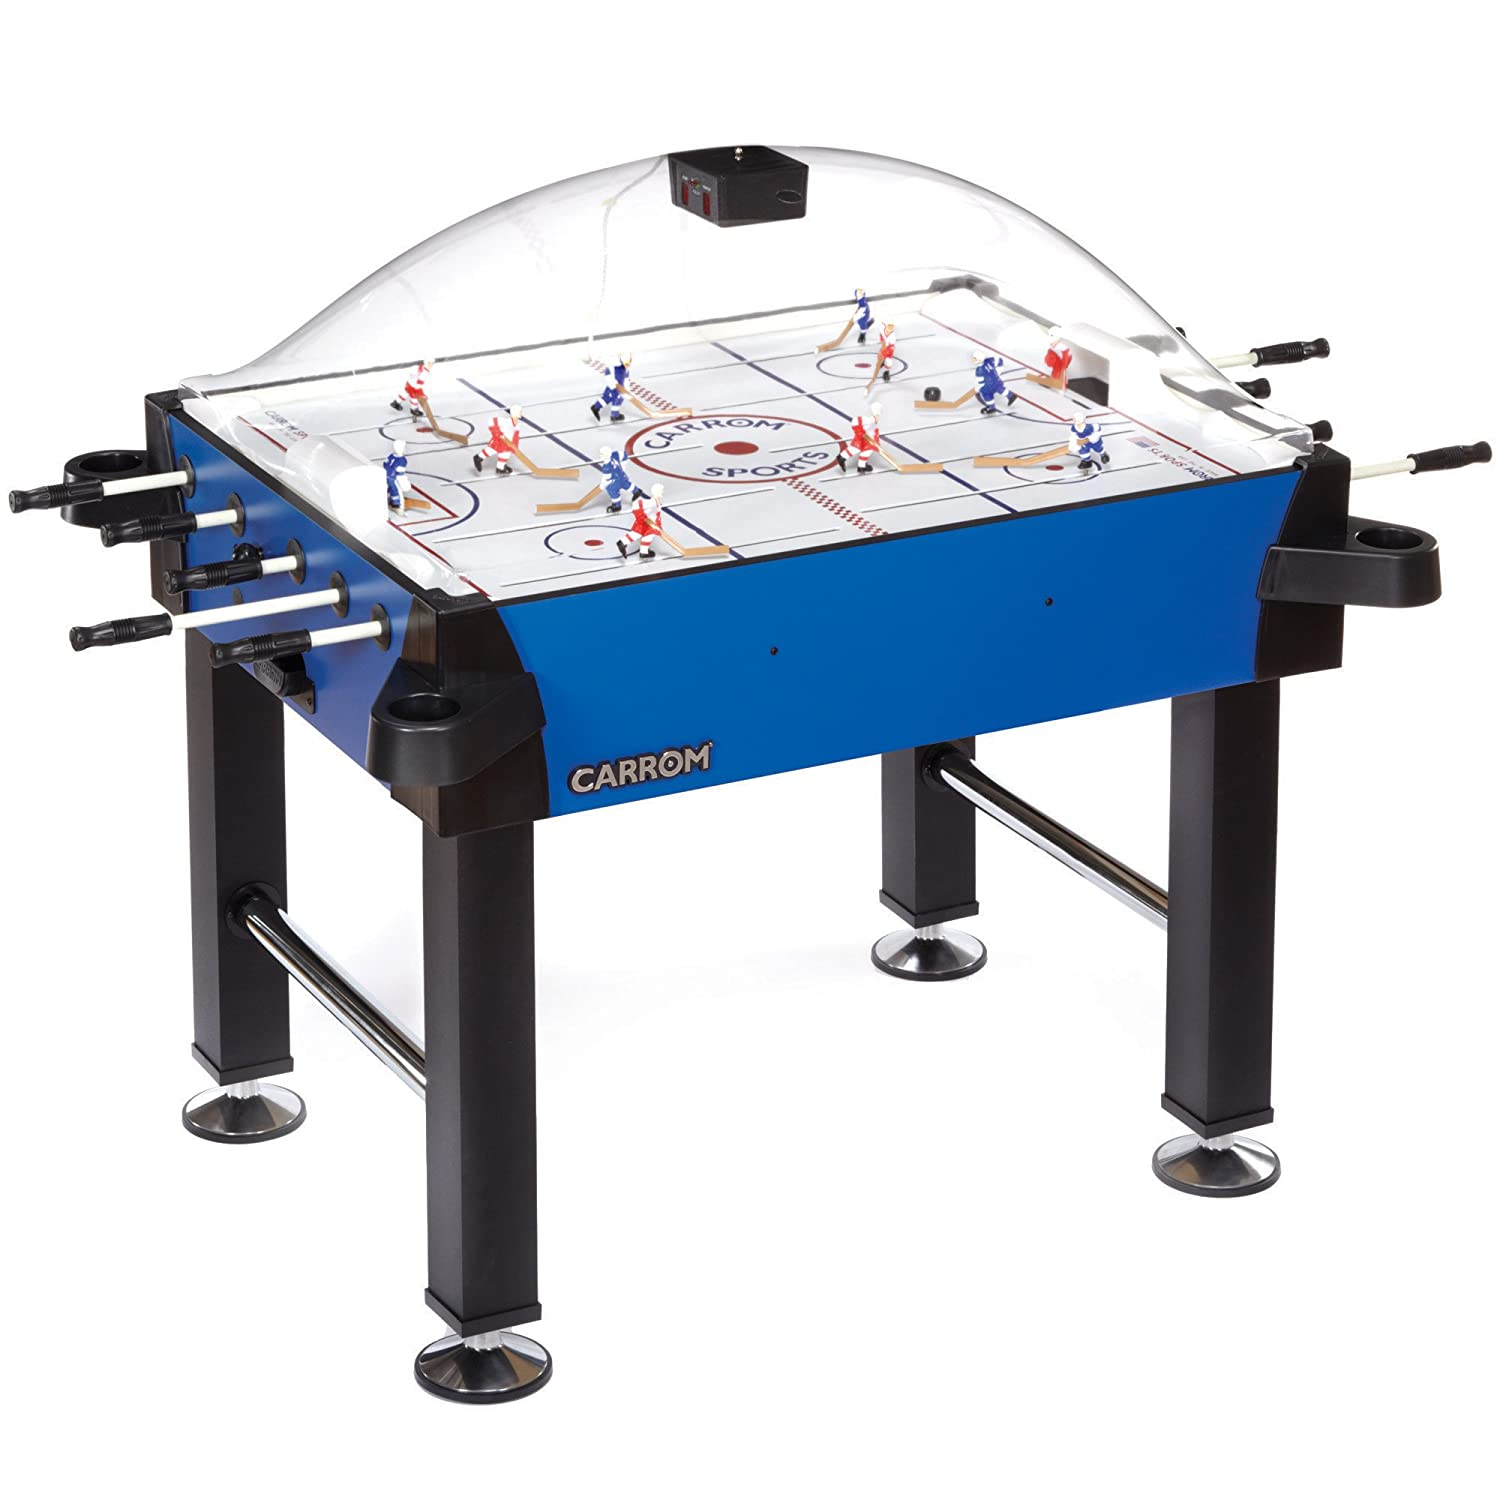 Carrom 435.00 Signature Stick Hockey Table With Legs (Blue)